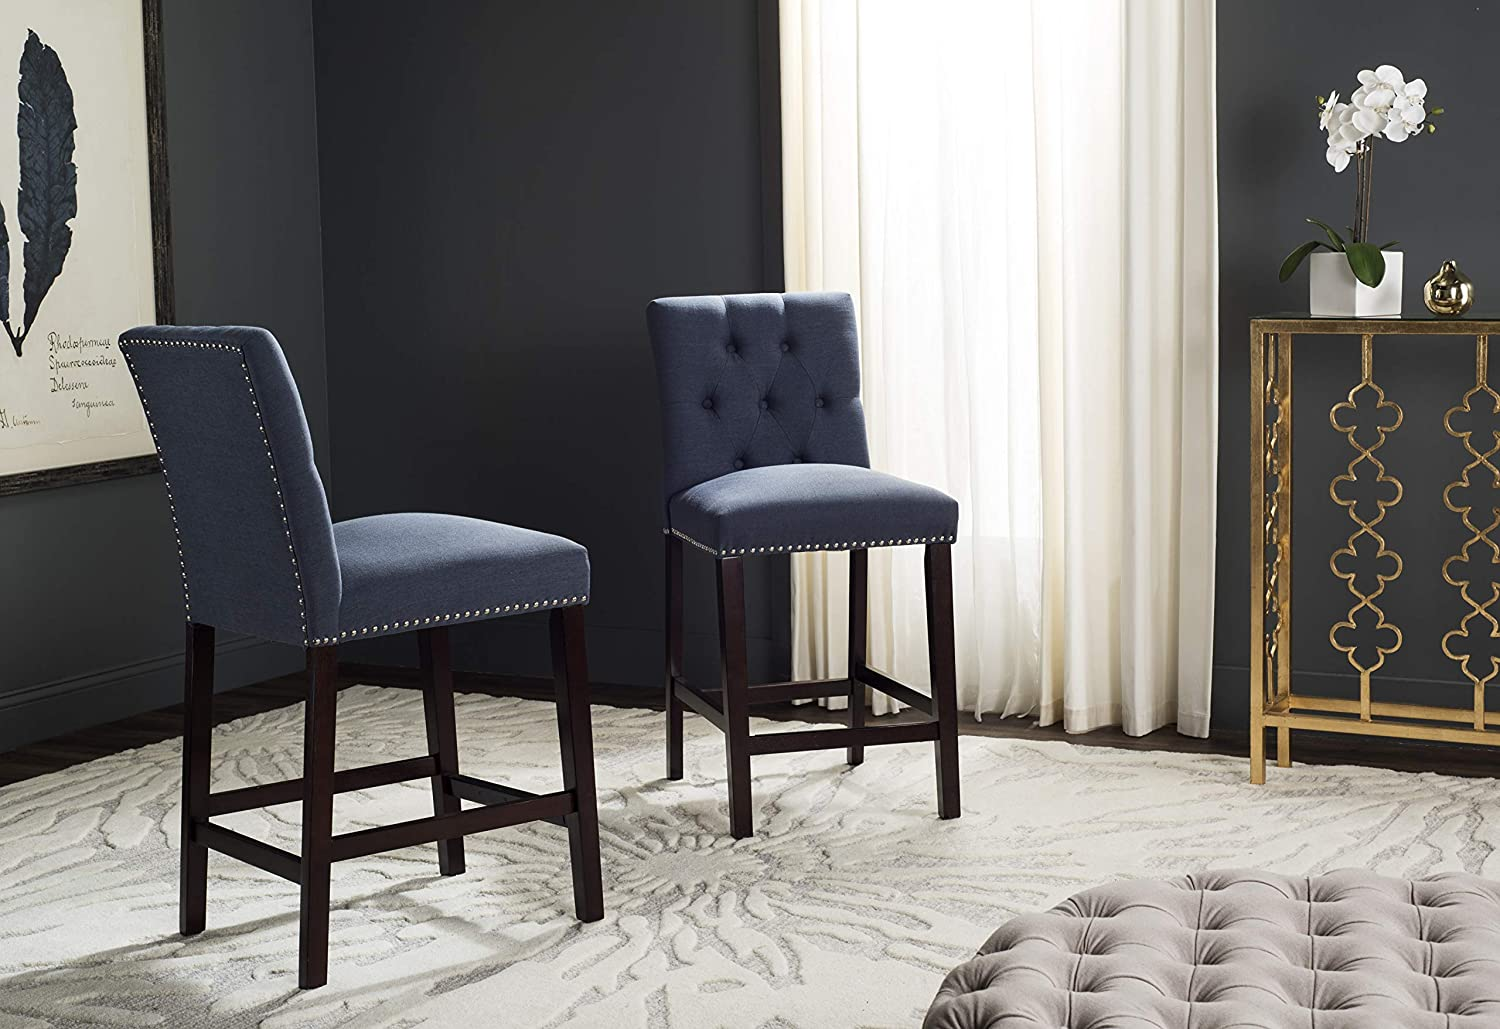 Safavieh Home Collection Norah Navy and Espresso Counter Stool Set of 2